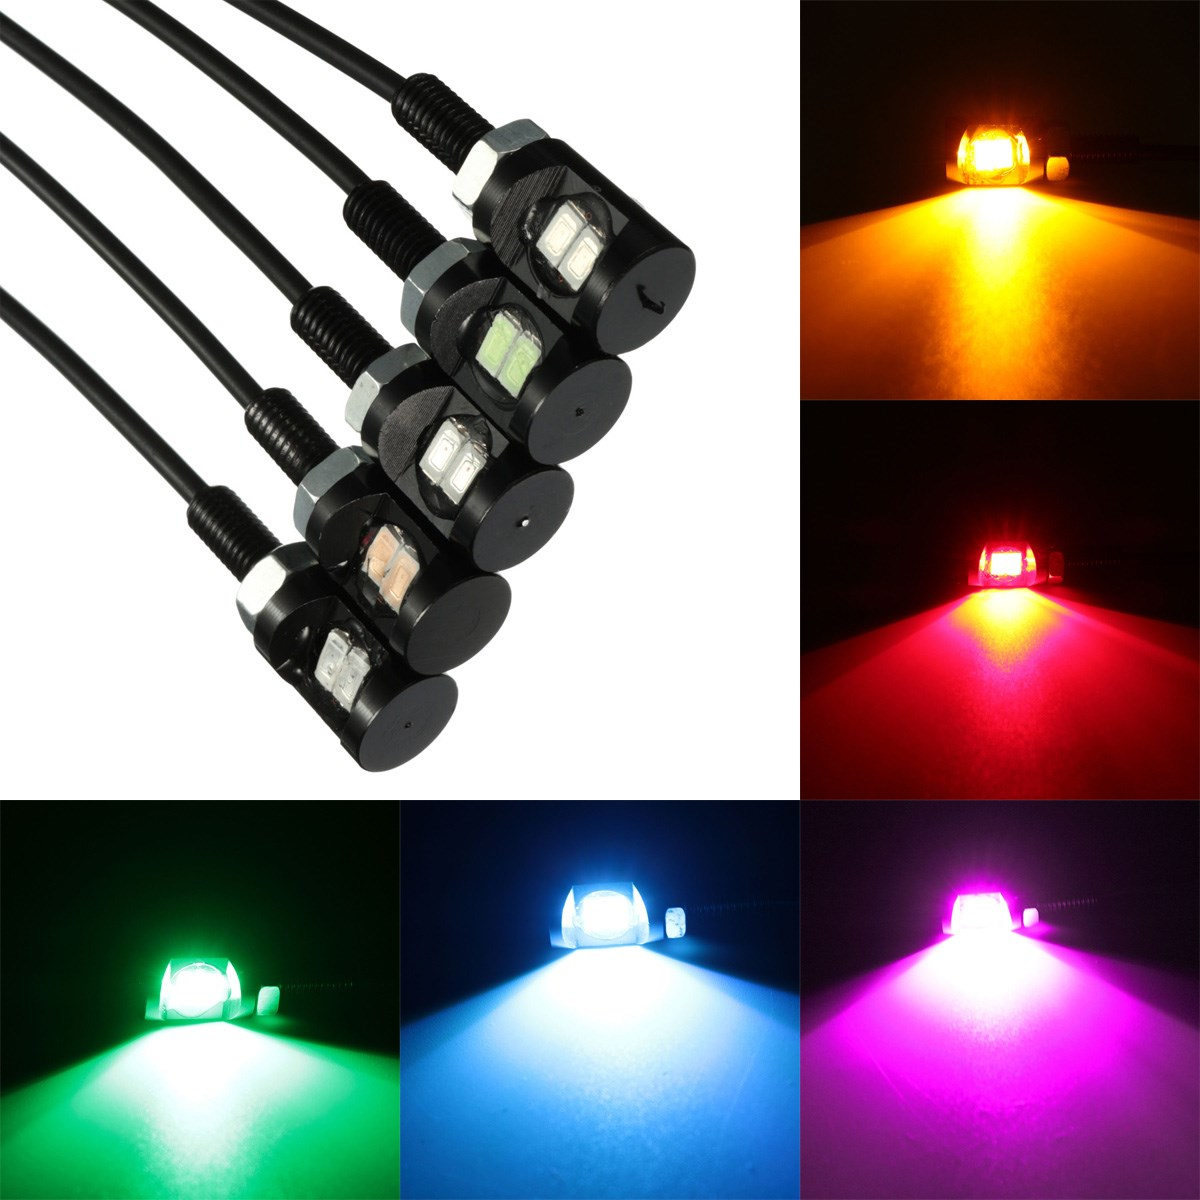 12V 2 LED SMD Motorcycle Car Number License Plate Screw Bolt Light Lamp Bulb